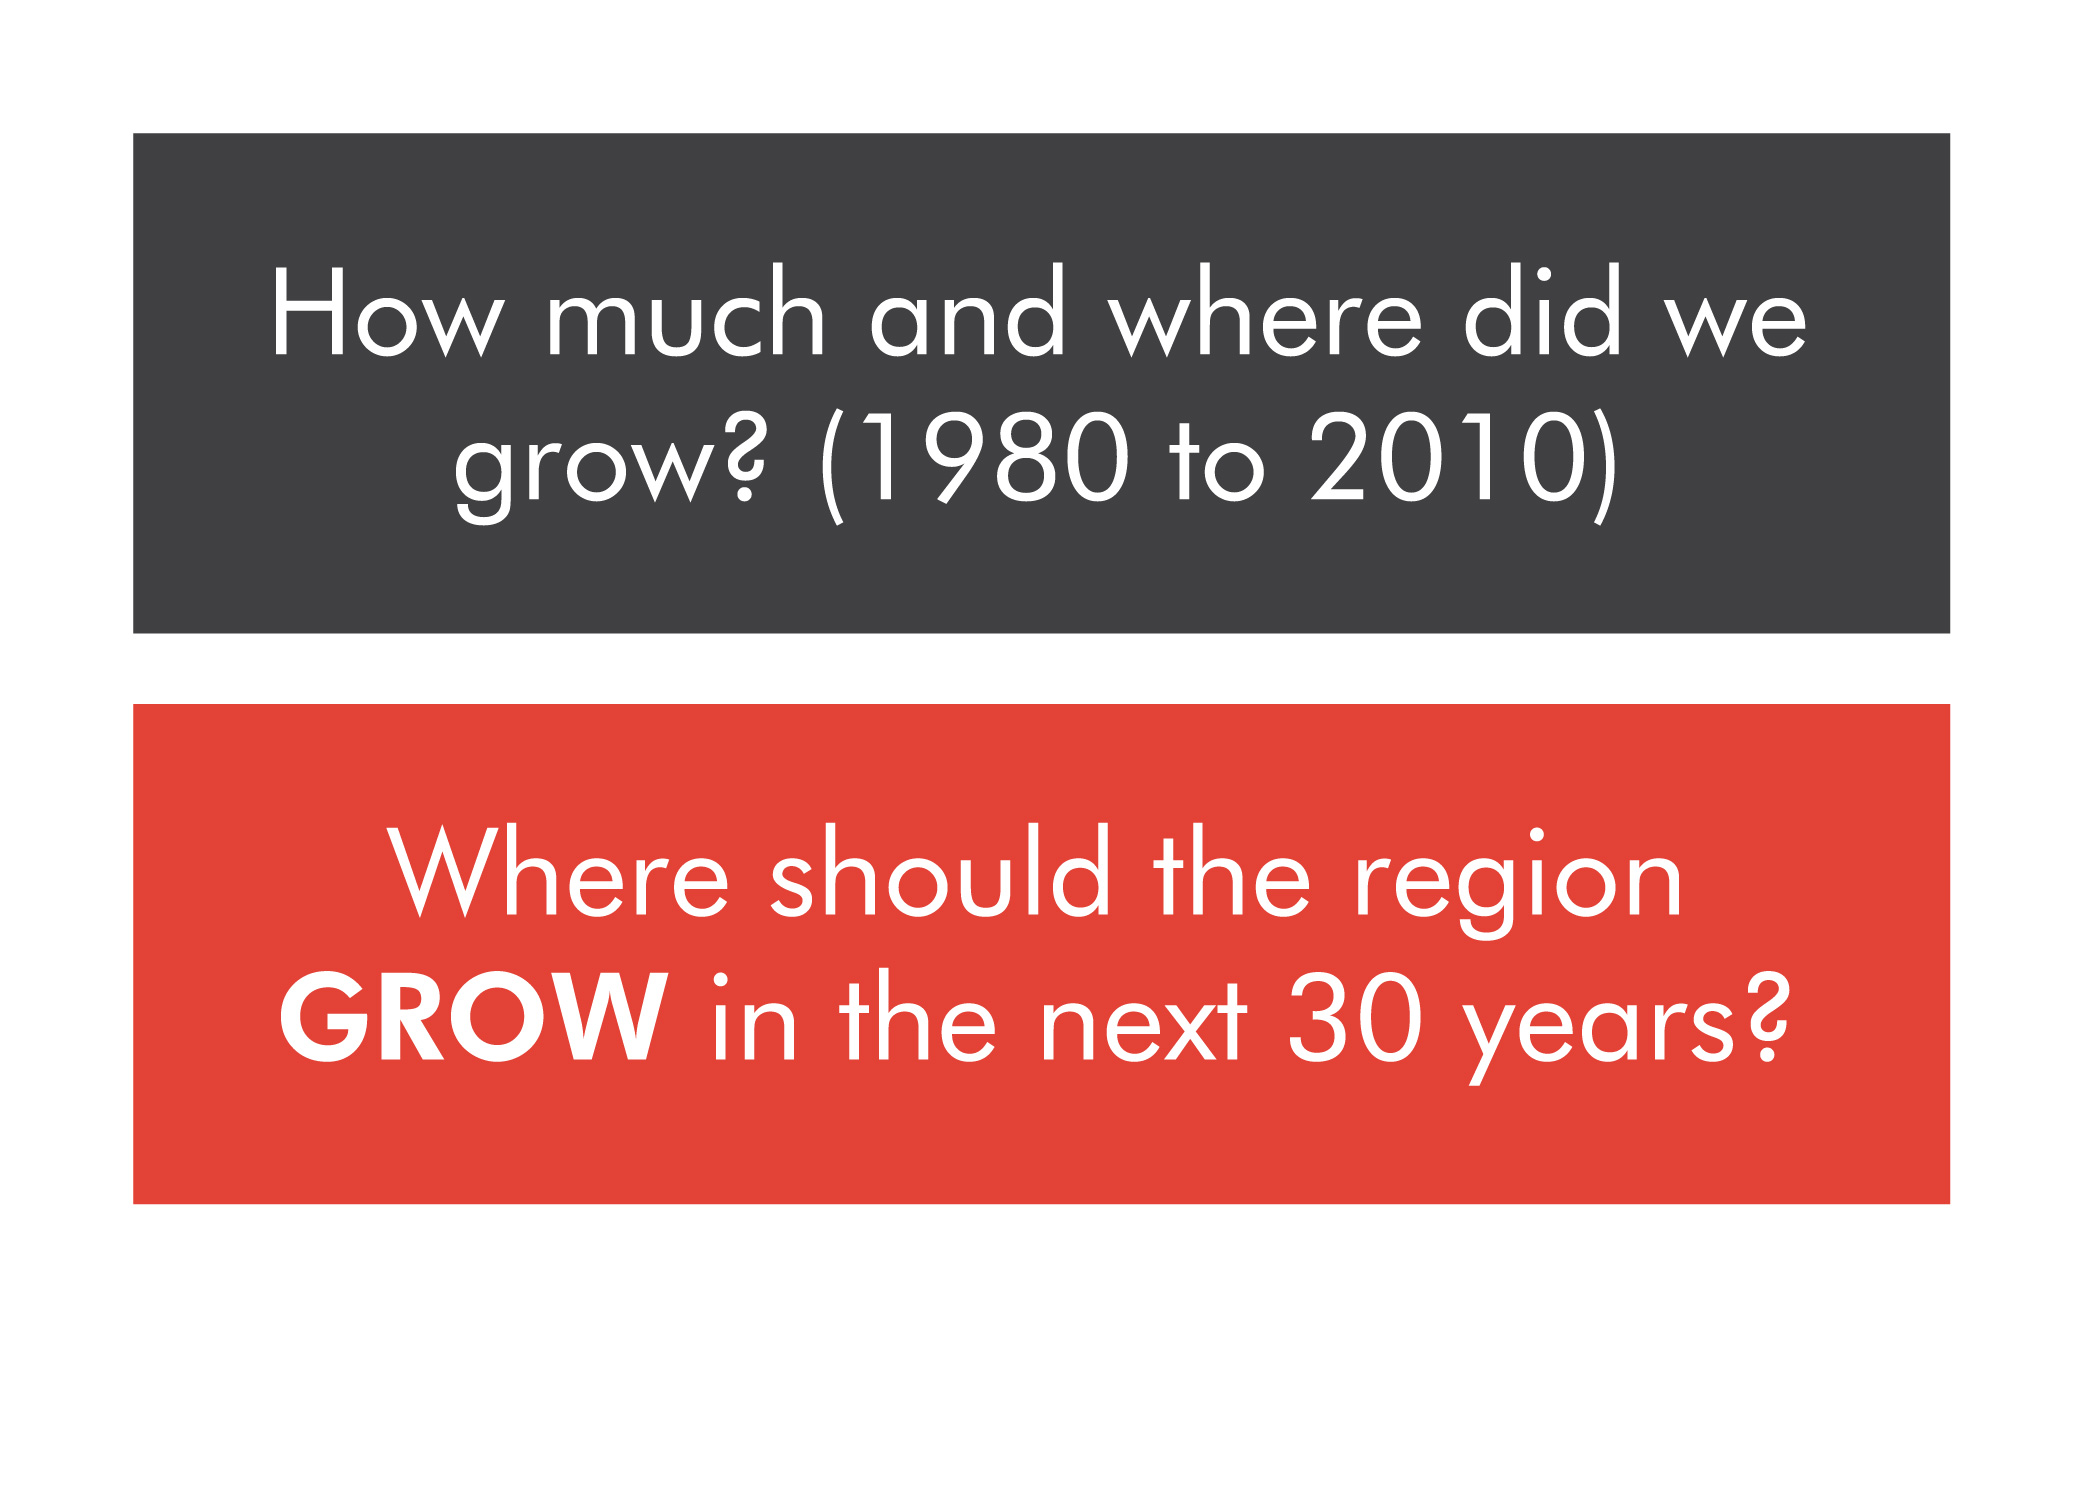 Where should the region grow?